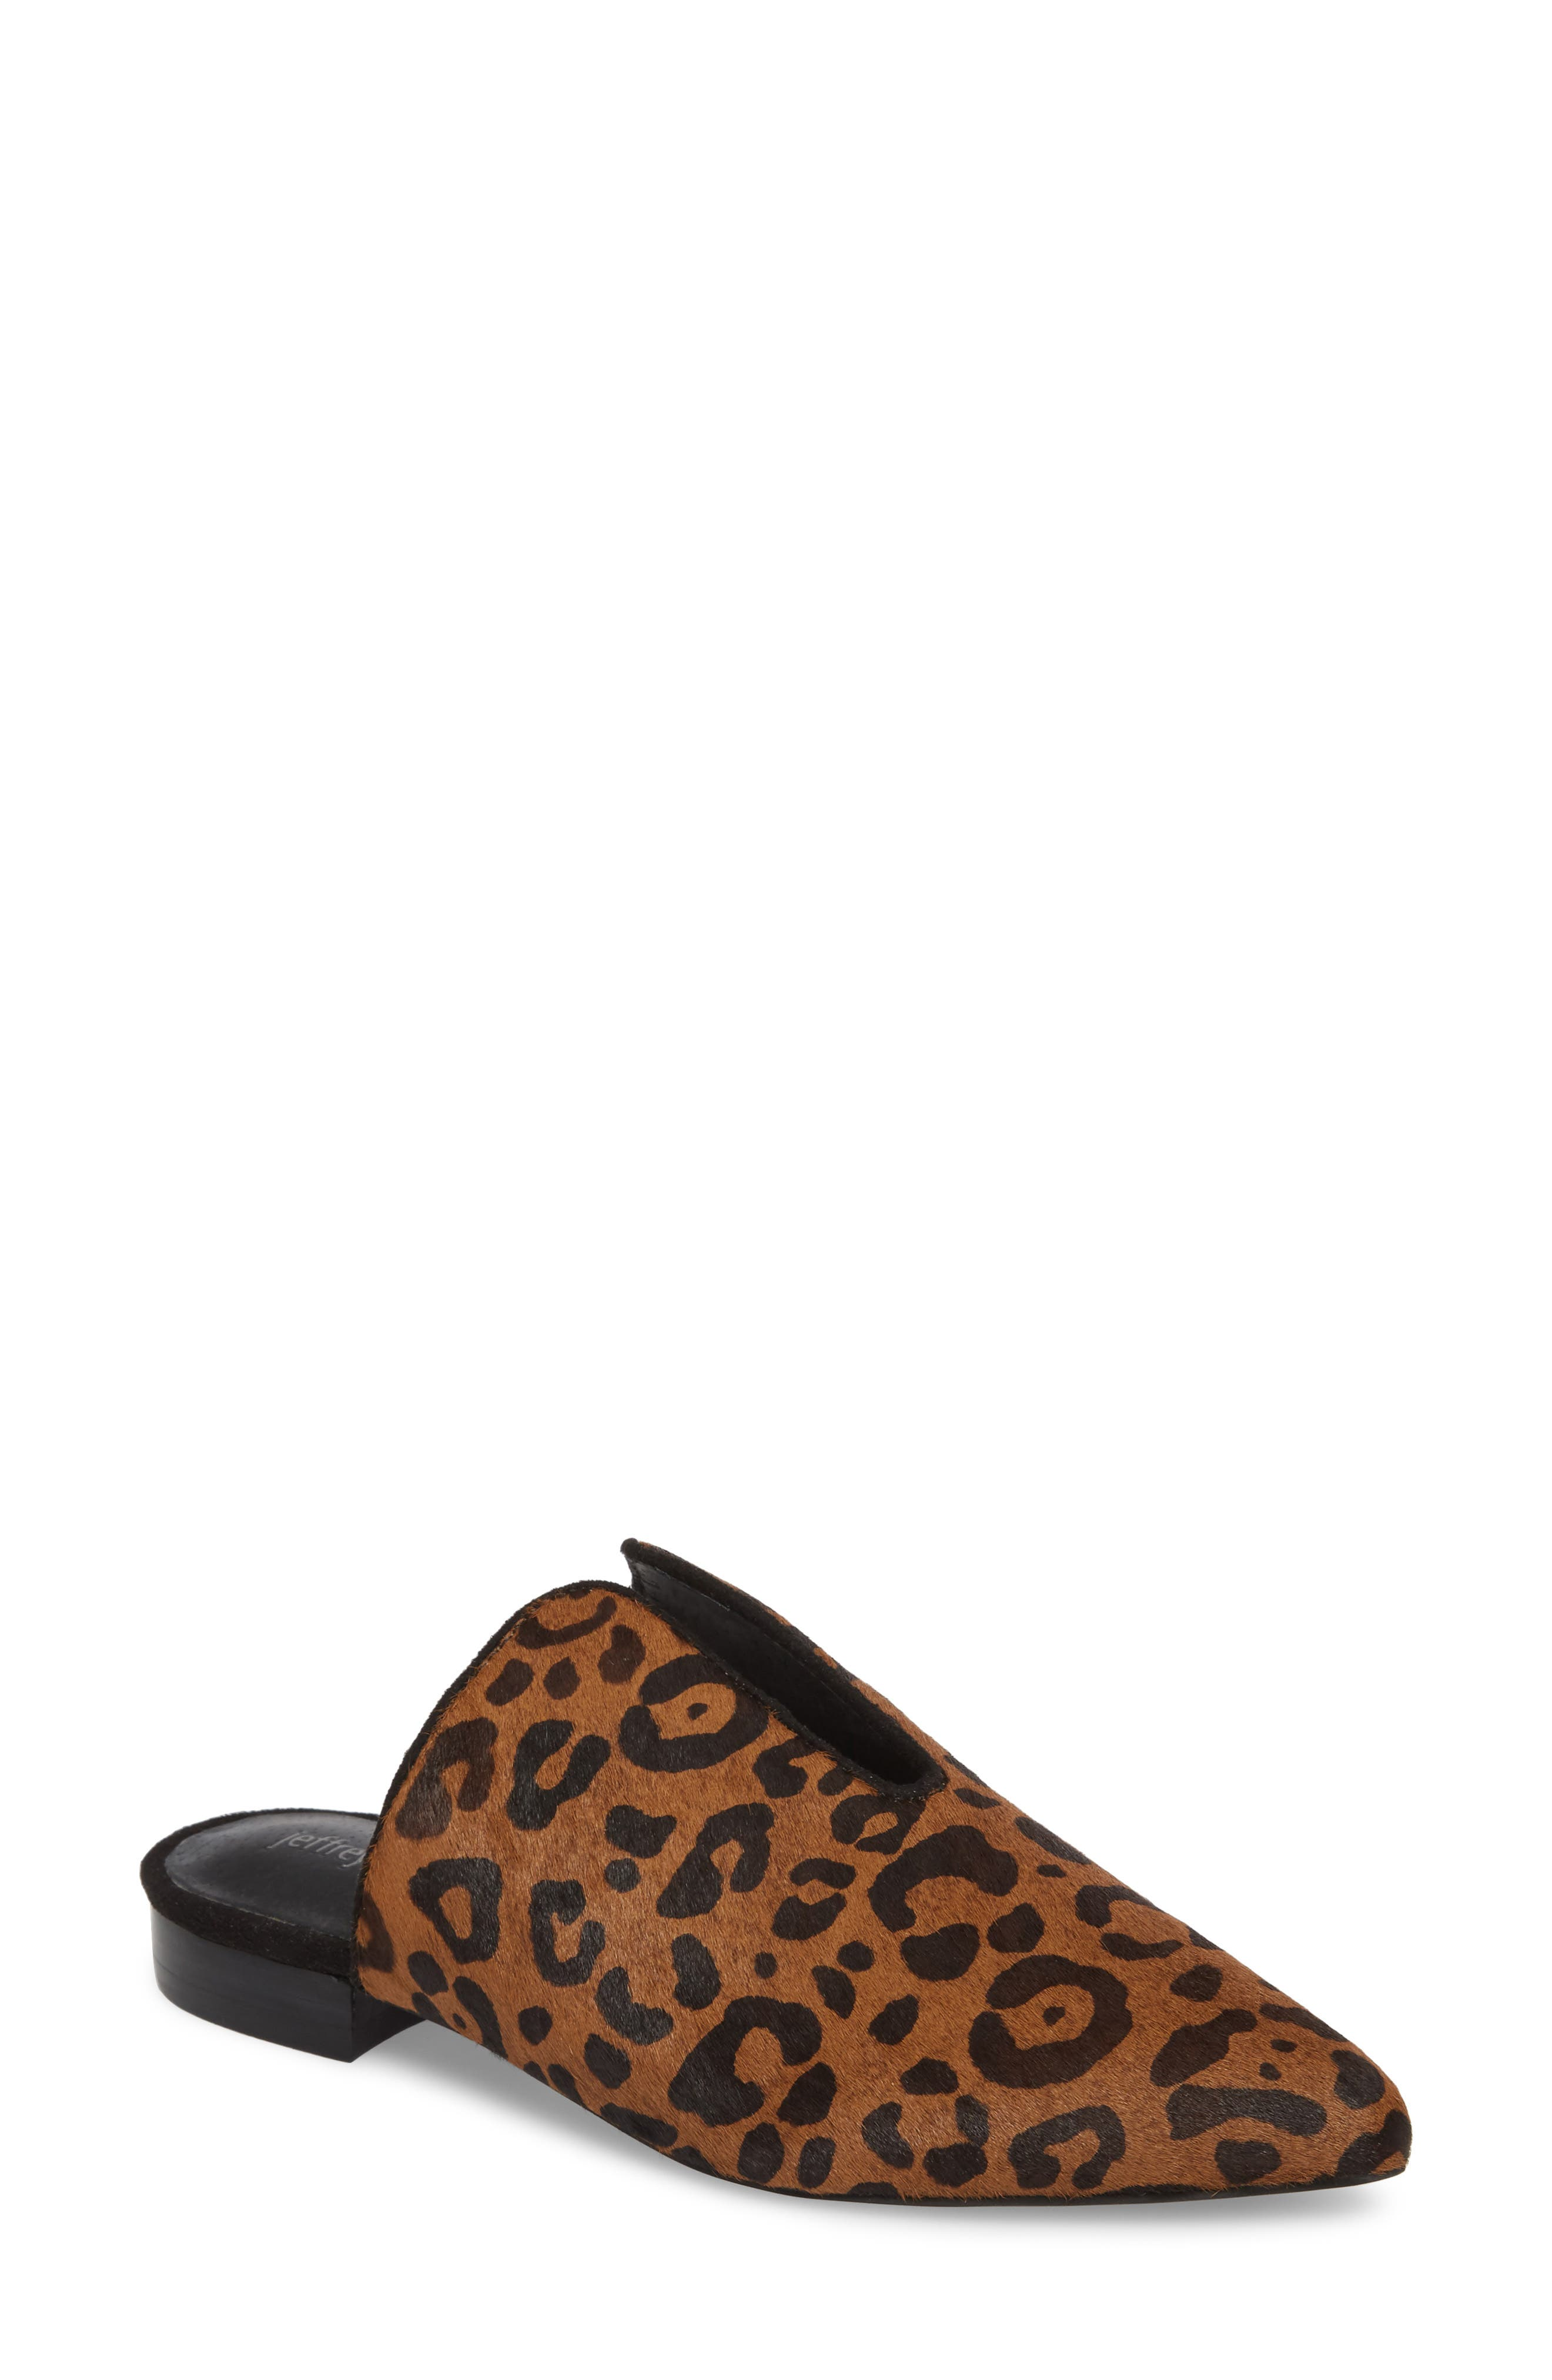 Alternate Image 1 Selected - Jeffrey Campbell Cleos Mule (Women)